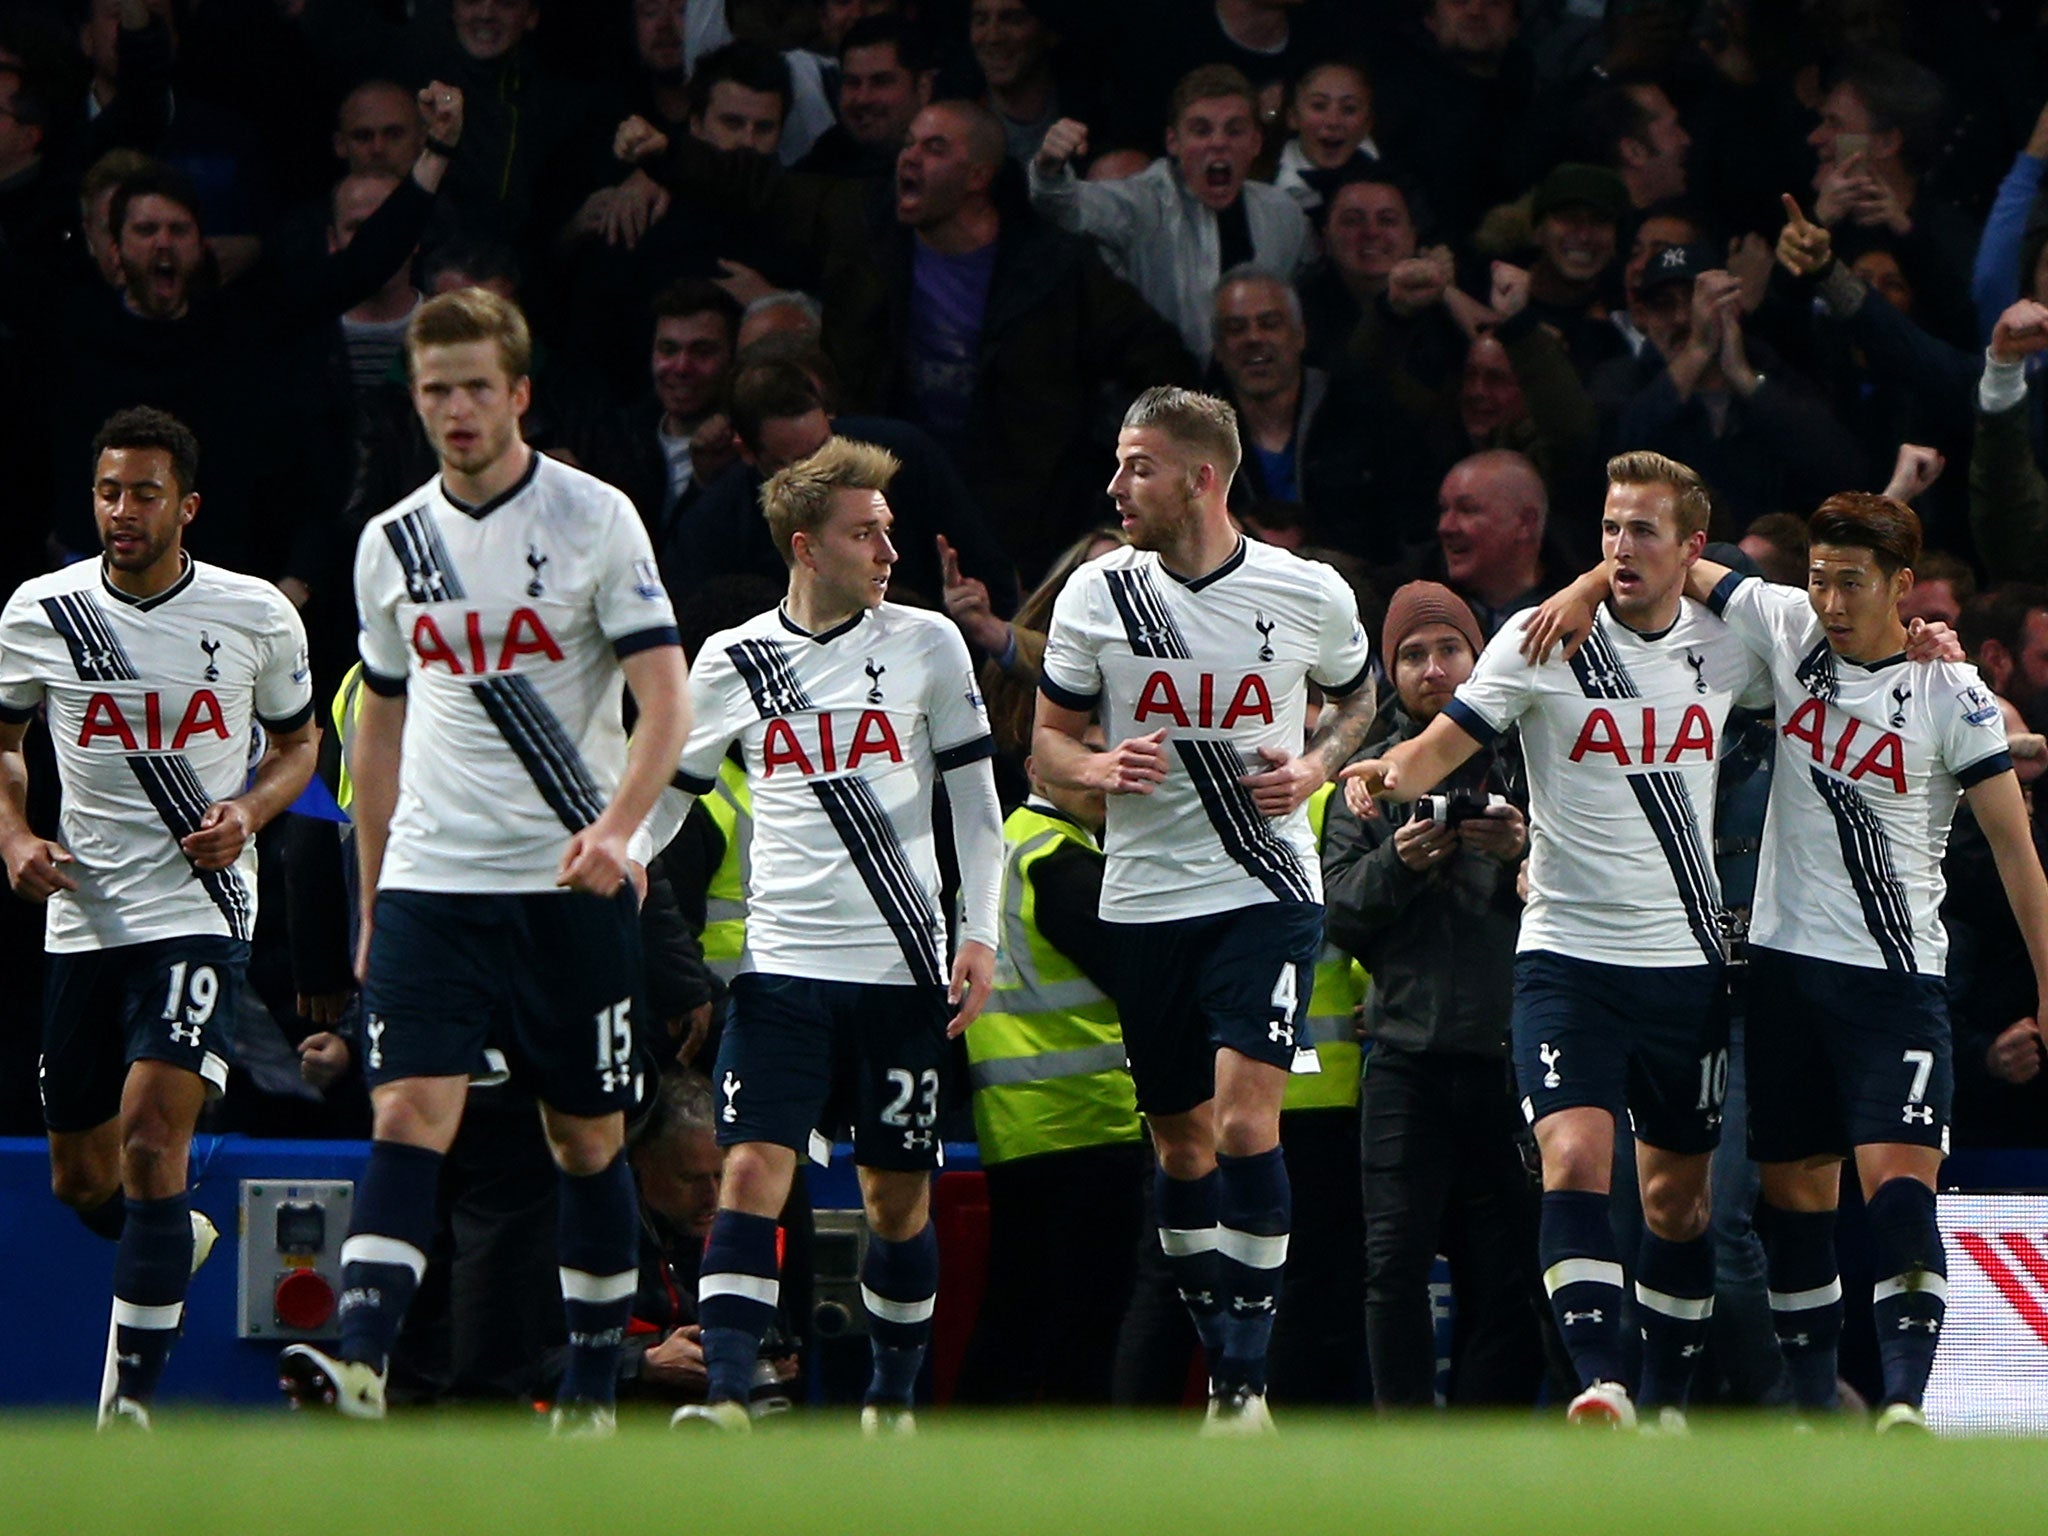 Chelsea 2 Tottenham 2: Mauricio Pochettino refuses to condemn heated Spurs players